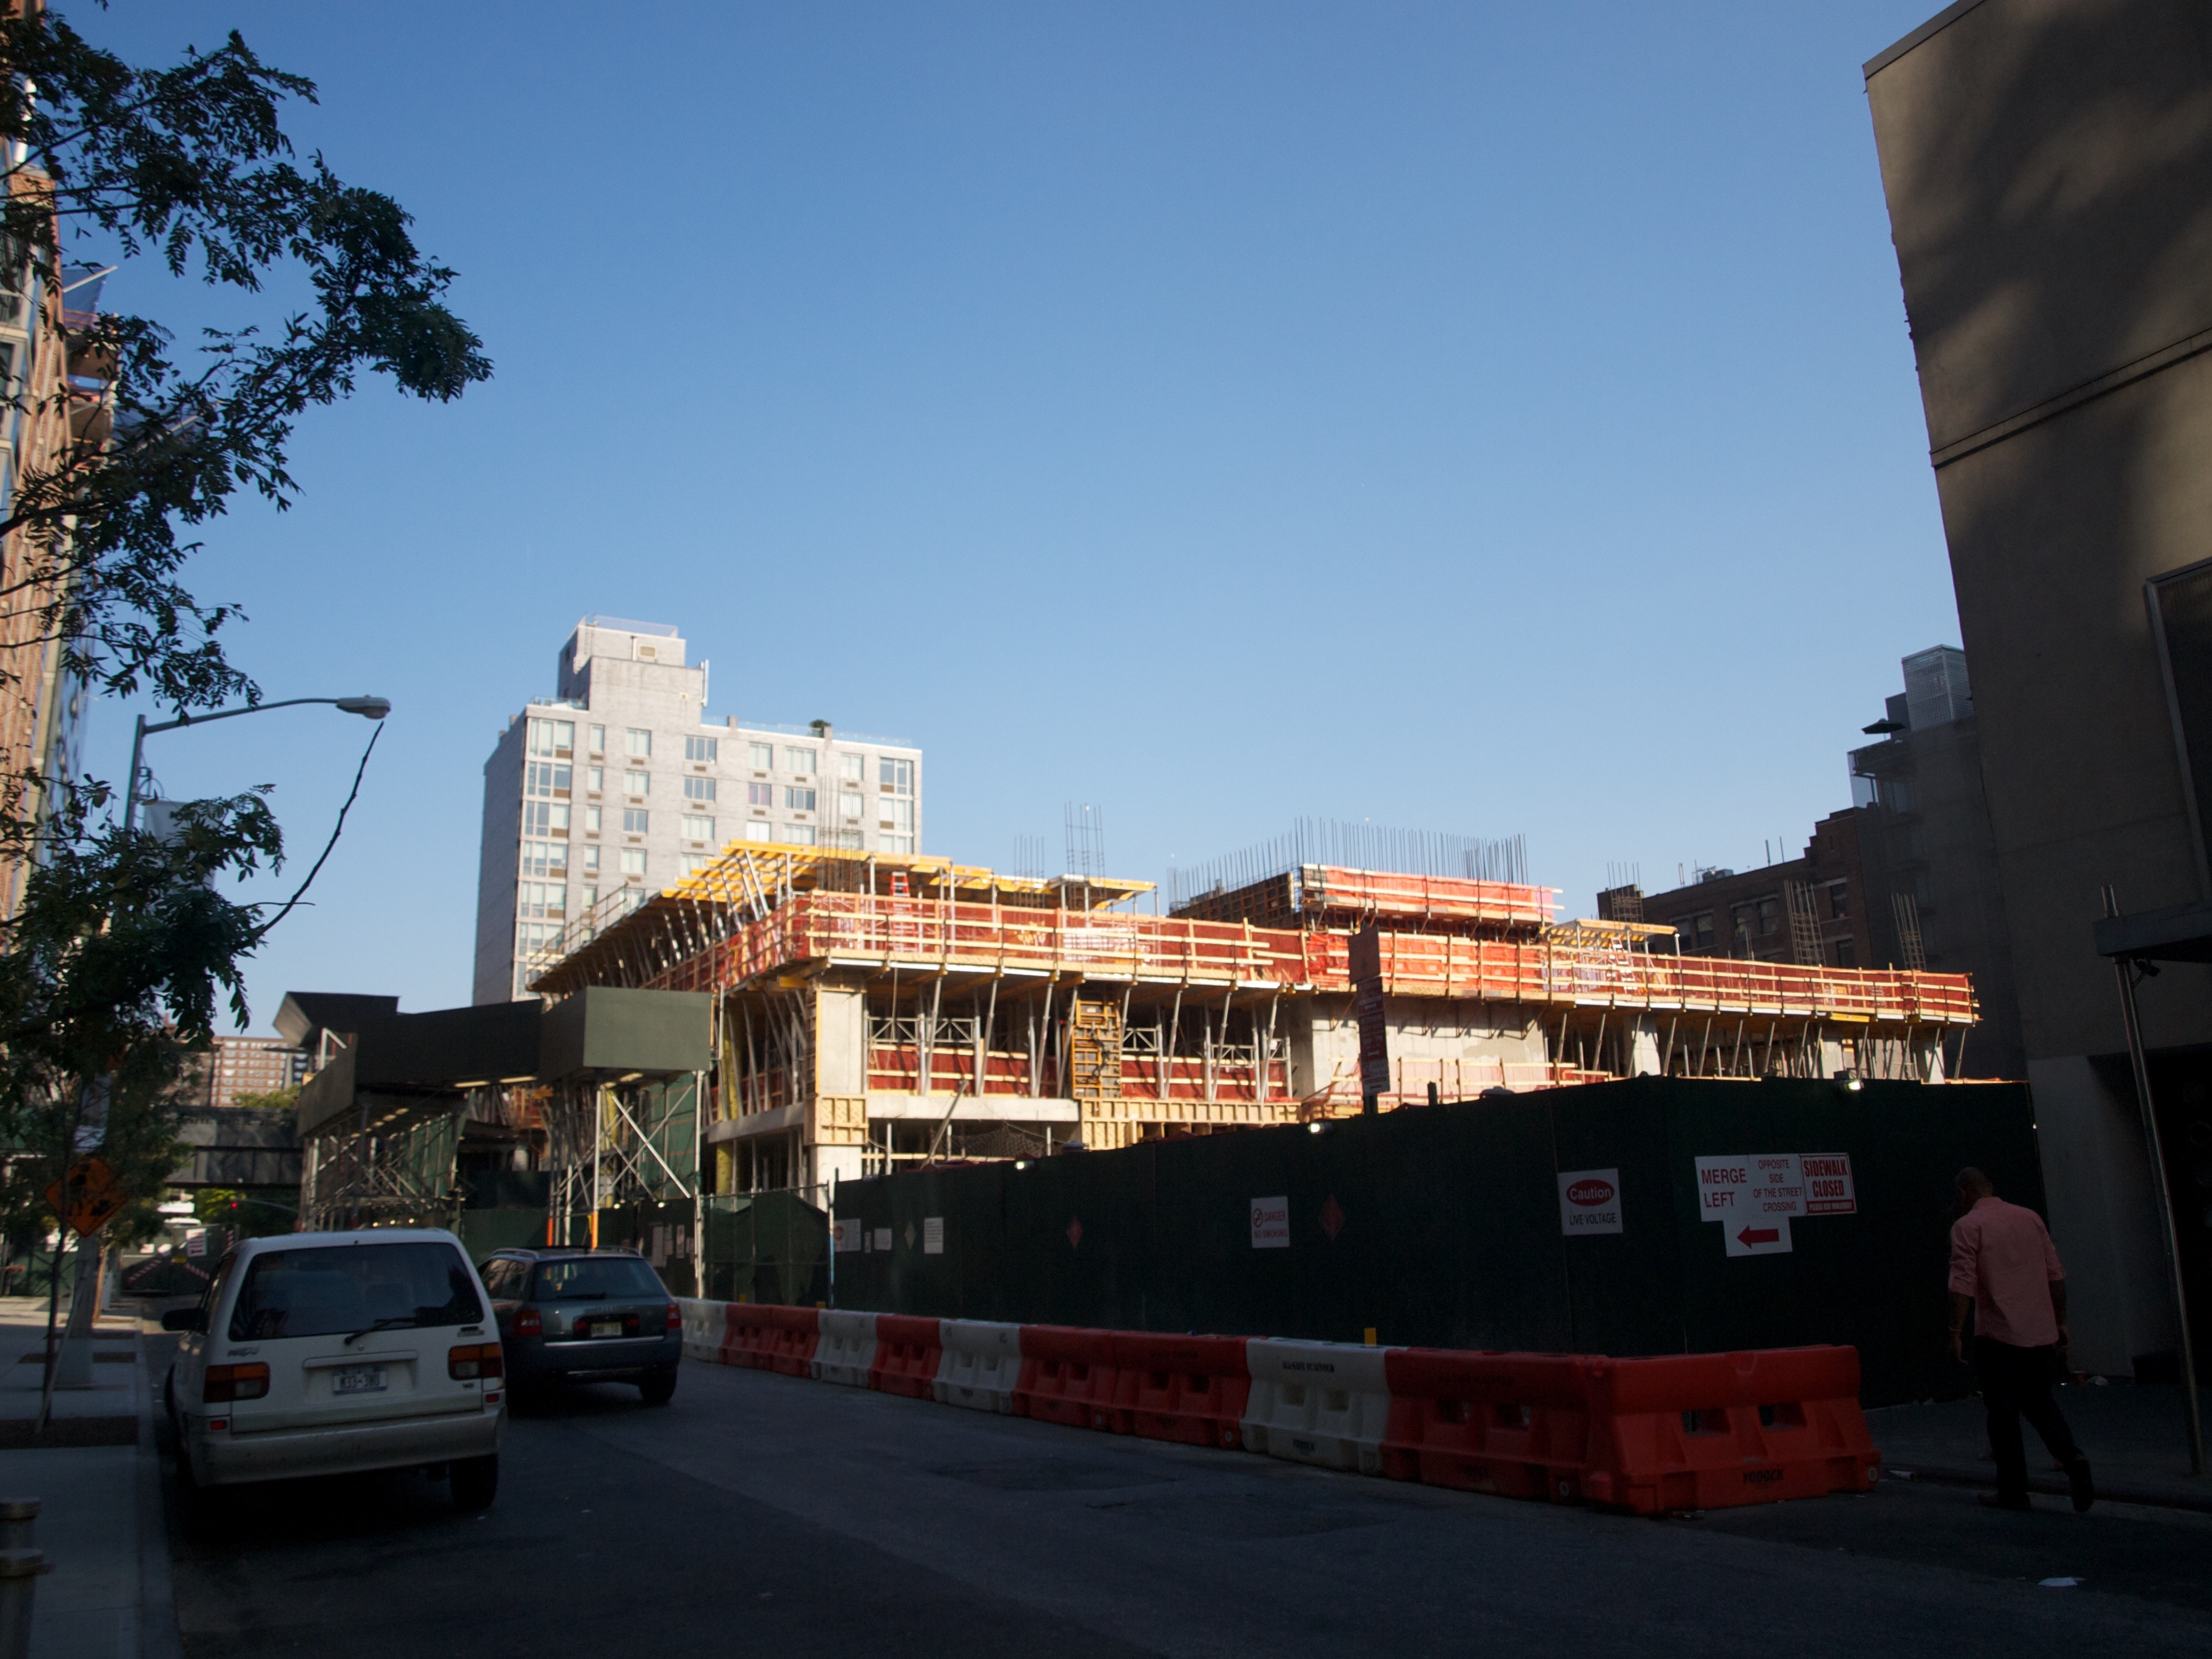 520 West 28th Street is still under construction and will not be finished until late 2016, or even 2017